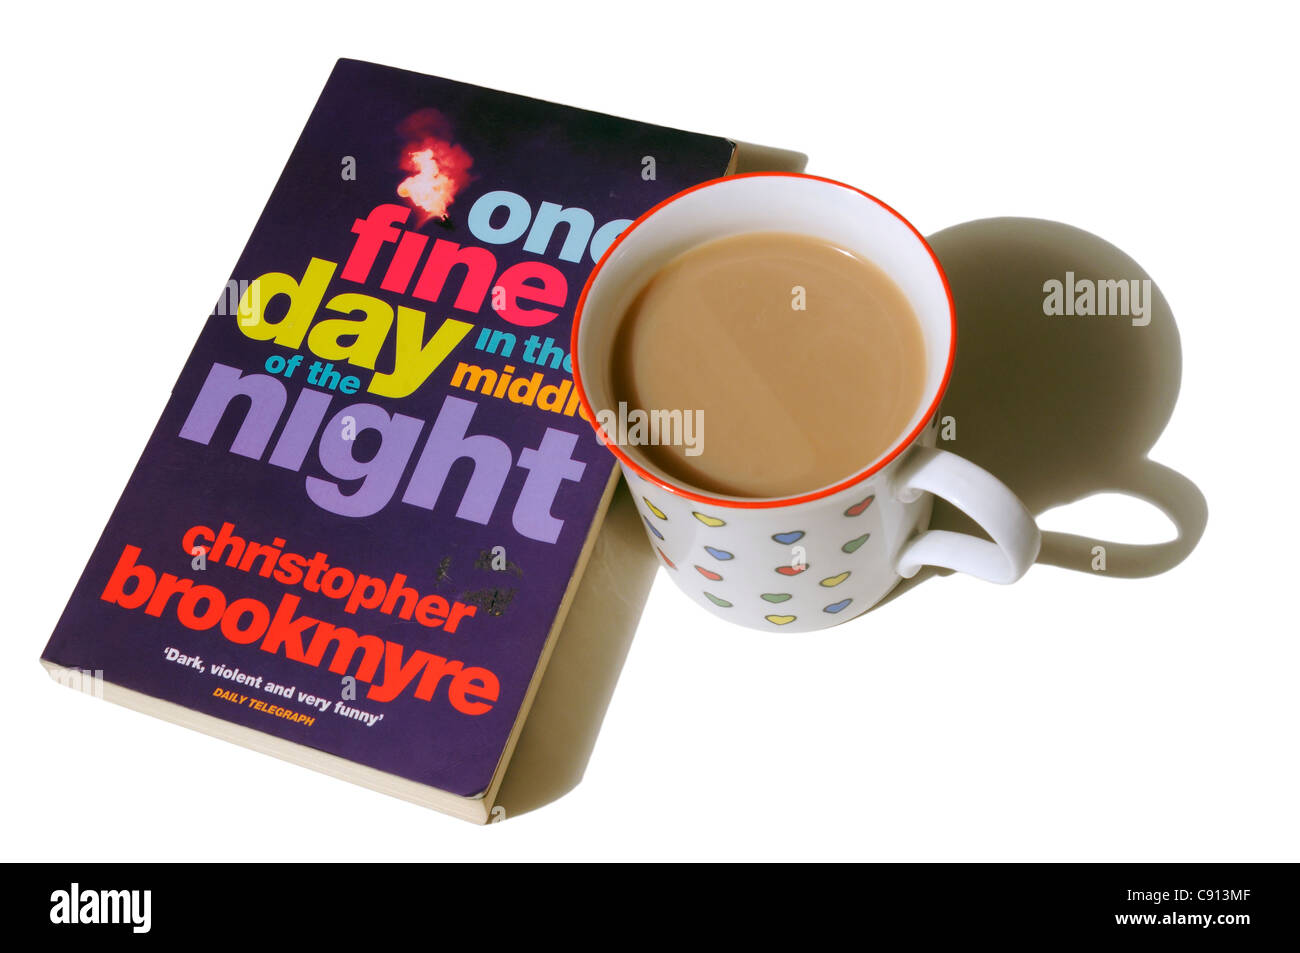 One Fine Day in the Middle of the Night by Christopher Brookmyre with a mug of tea - Stock Image